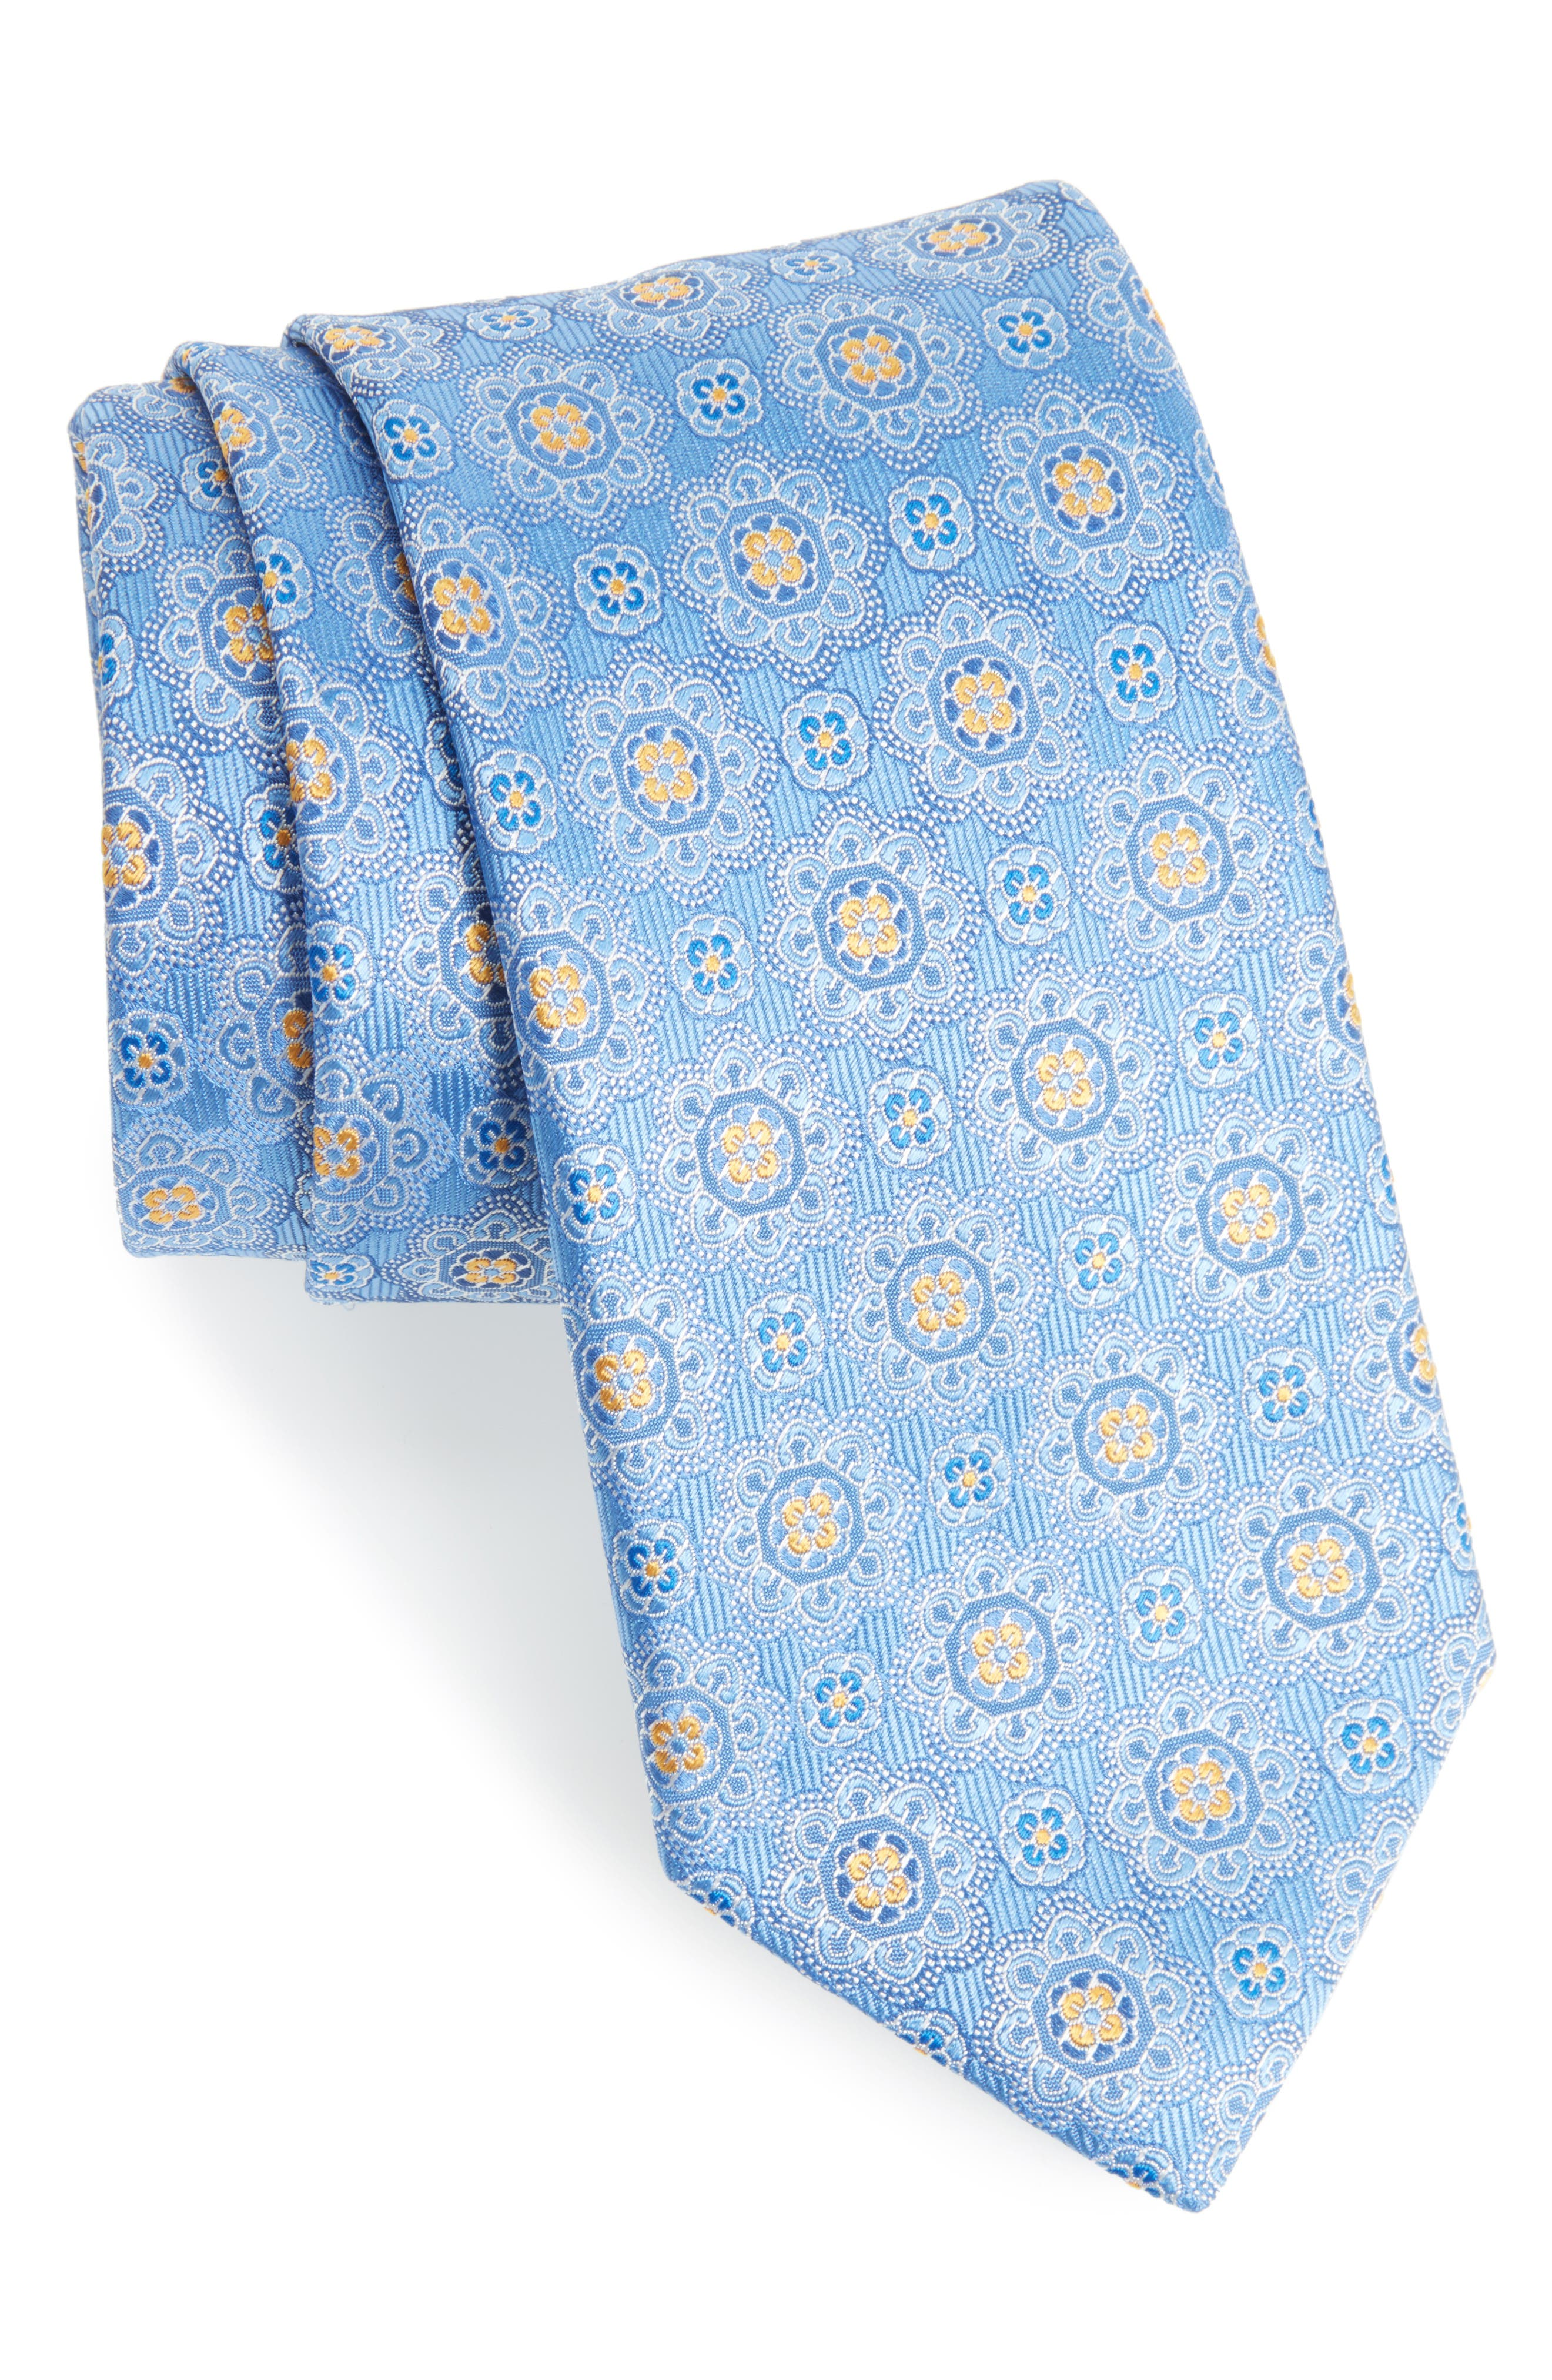 Medallion Silk Tie,                             Main thumbnail 1, color,                             Yellow/ Blue